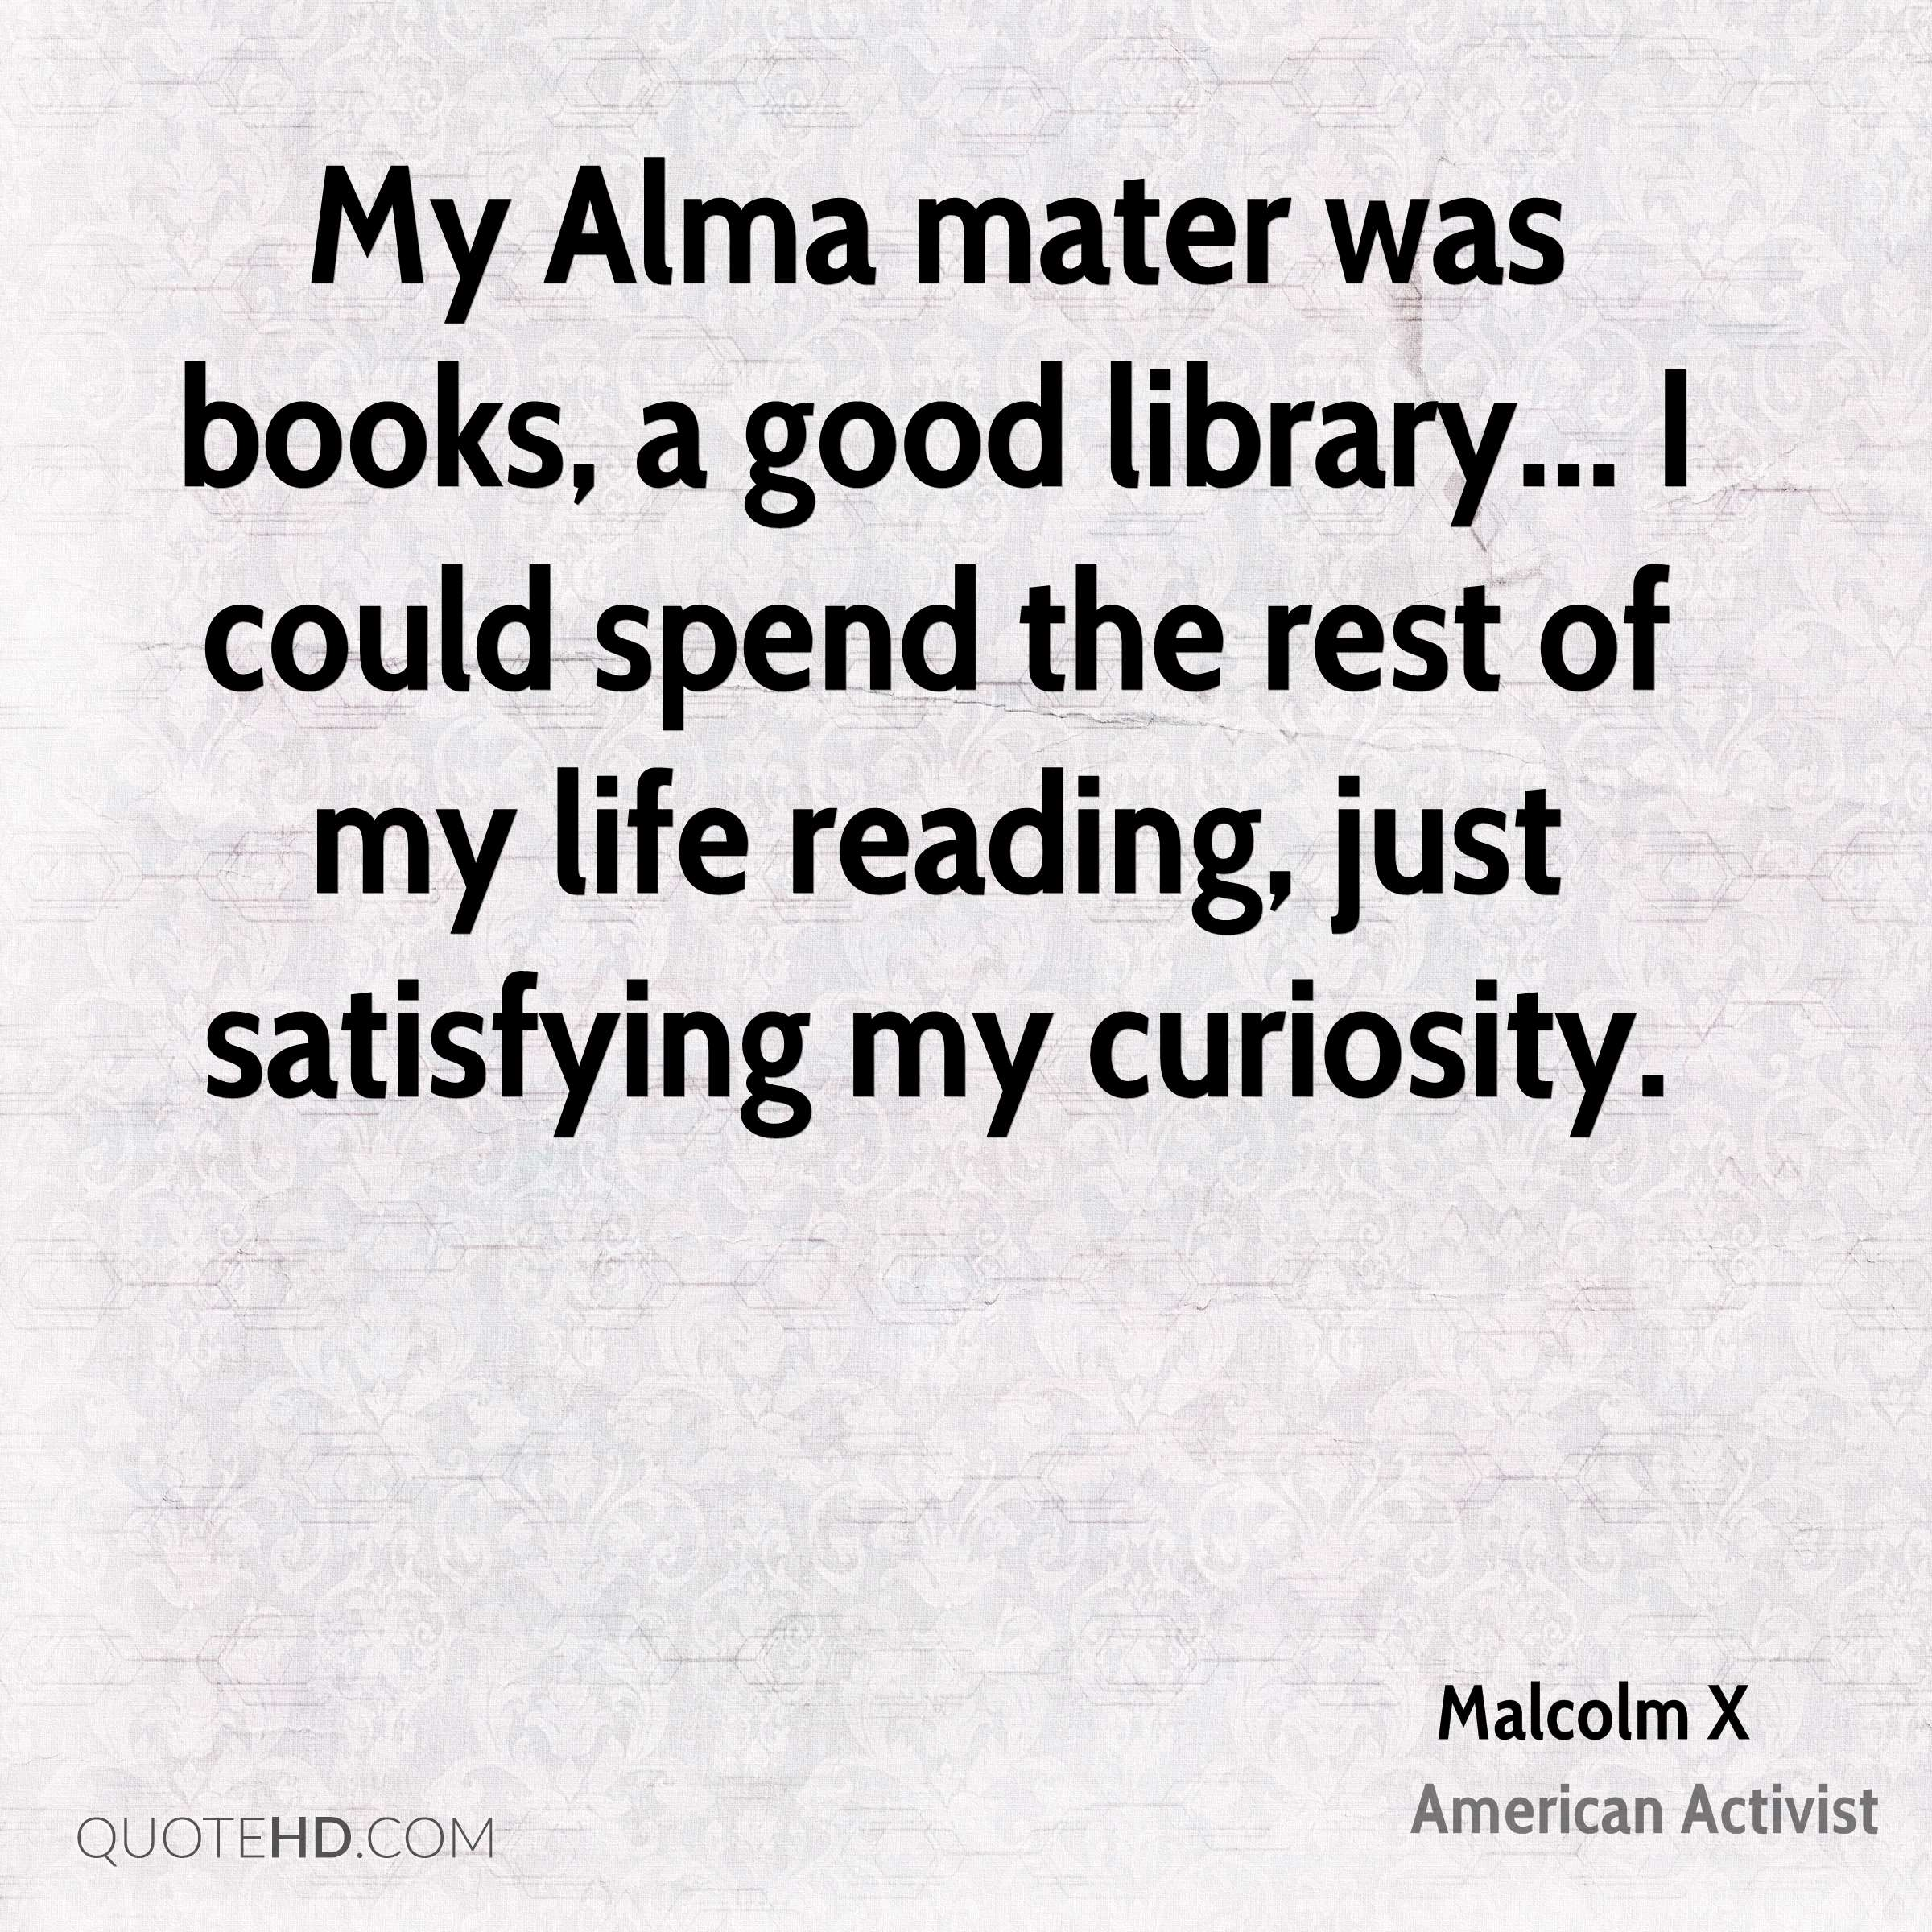 My Alma mater was books, a good library... I could spend the rest of my life reading, just satisfying my curiosity.